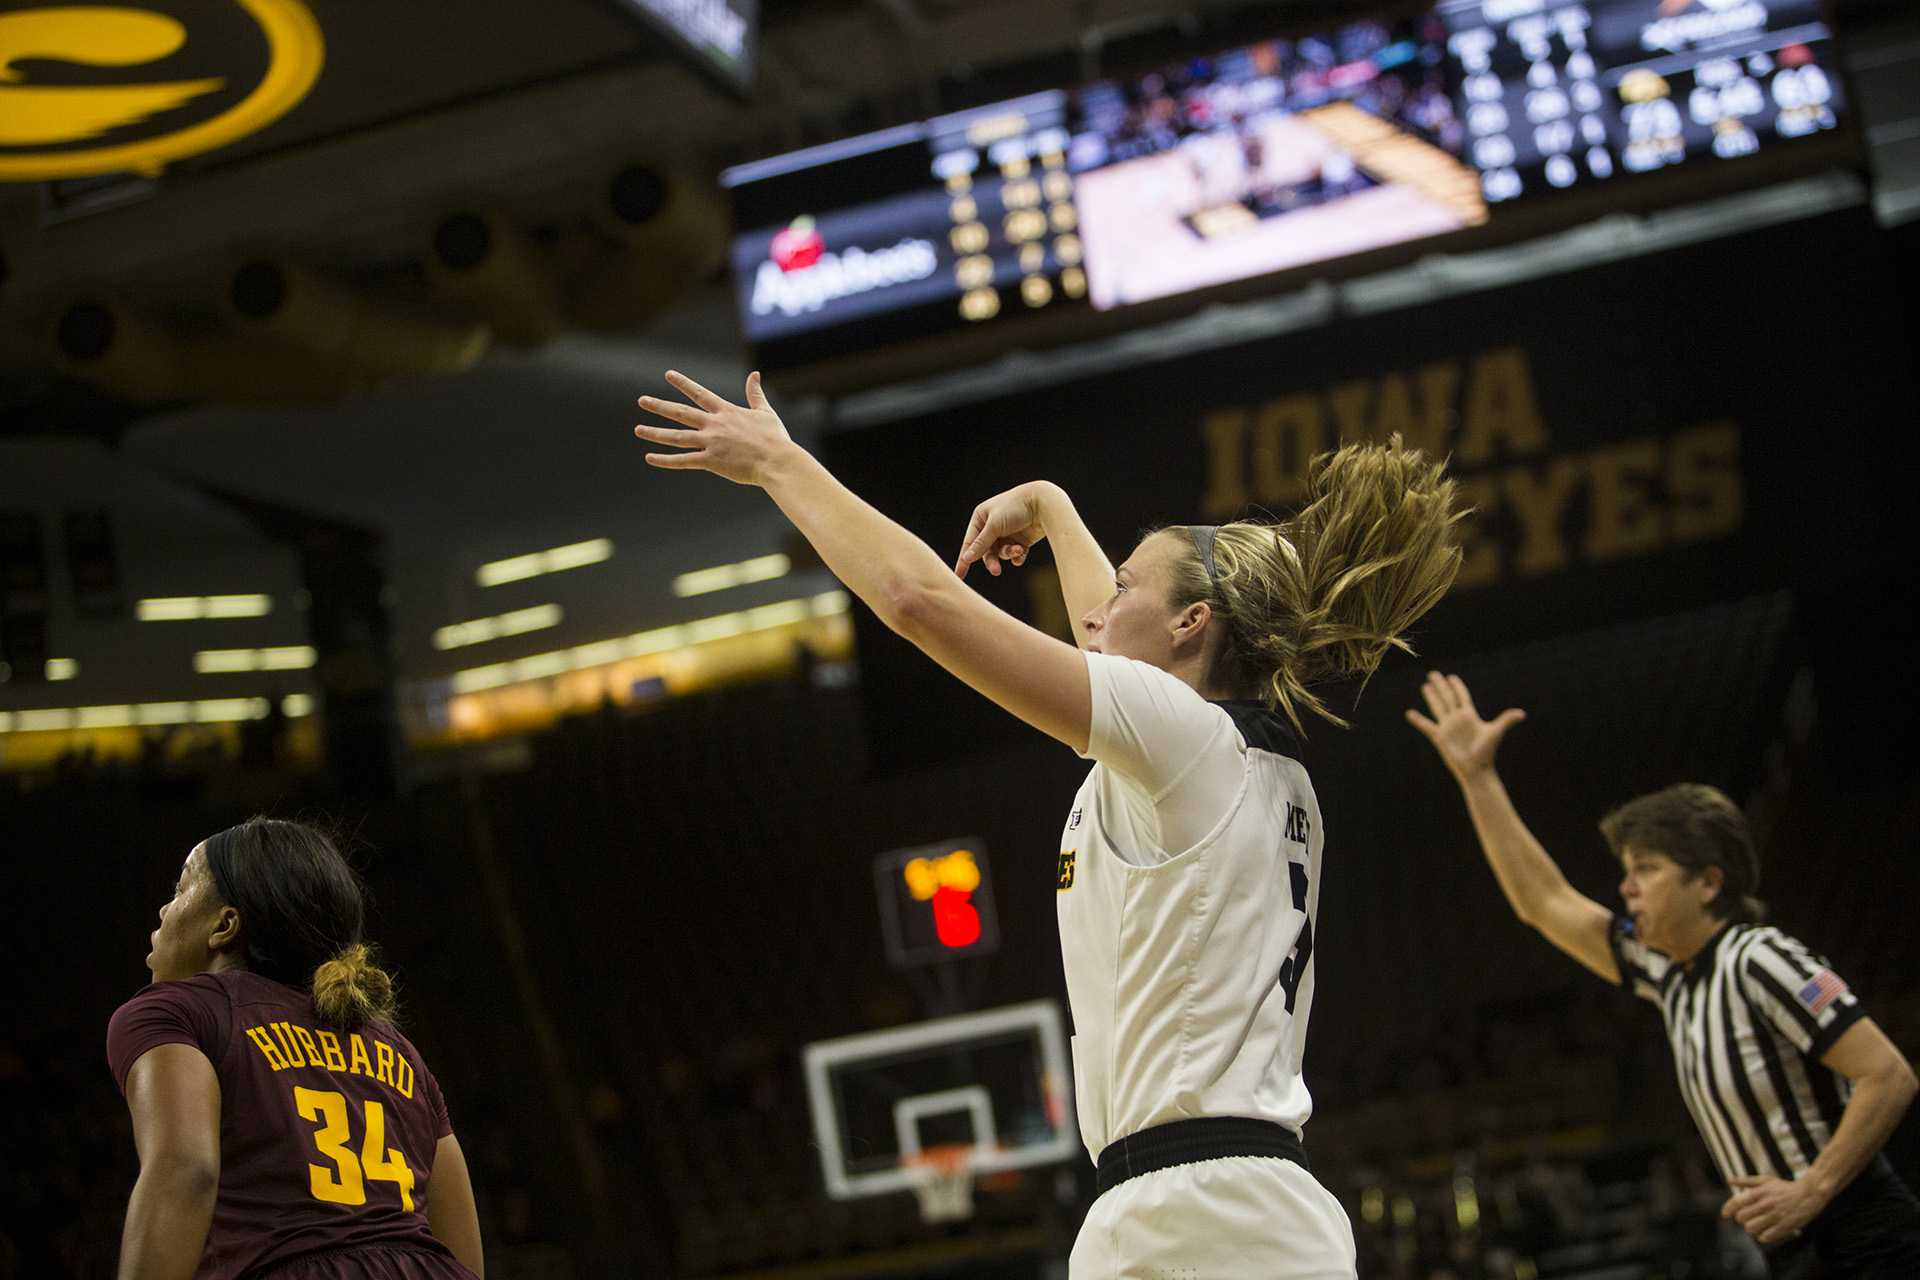 During the Iowa vs. Minnesota basketball game at Carver-Hawkeye Arena on Sunday, Feb. 4, 2018. The Hawkeyes defeated the Golden Gophers 92-84. Iowa Sophomore, Makenzie Meyer, drains a three pointer to increase the Hawkeyes lead at the end of the fourth quarter. (Chris Kalous/The Daily Iowan)